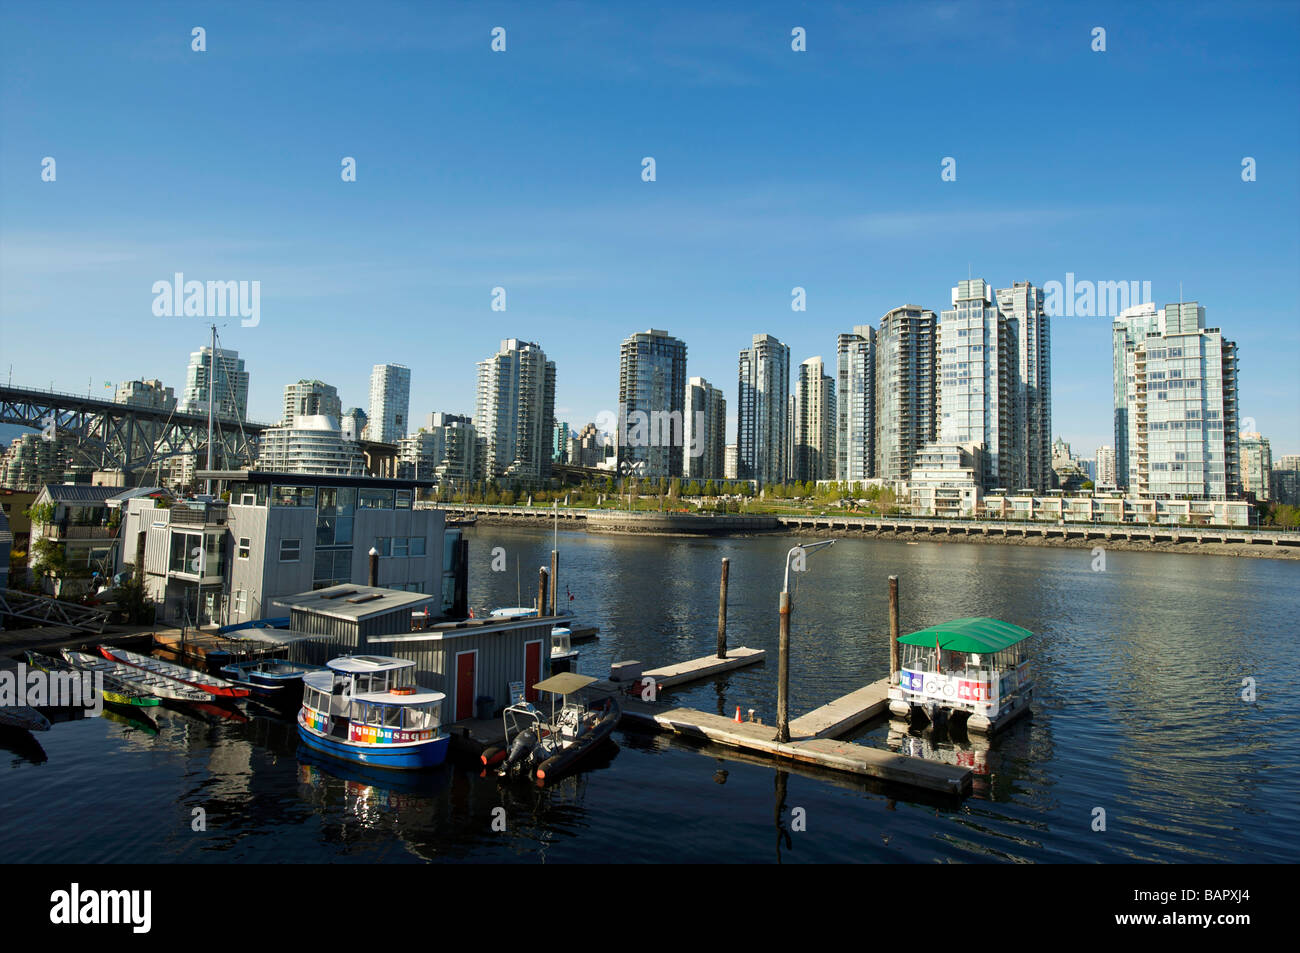 House boats in False Creek with the Condo towers of Yaletown in the background Vancouver BC Canada Stock Photo